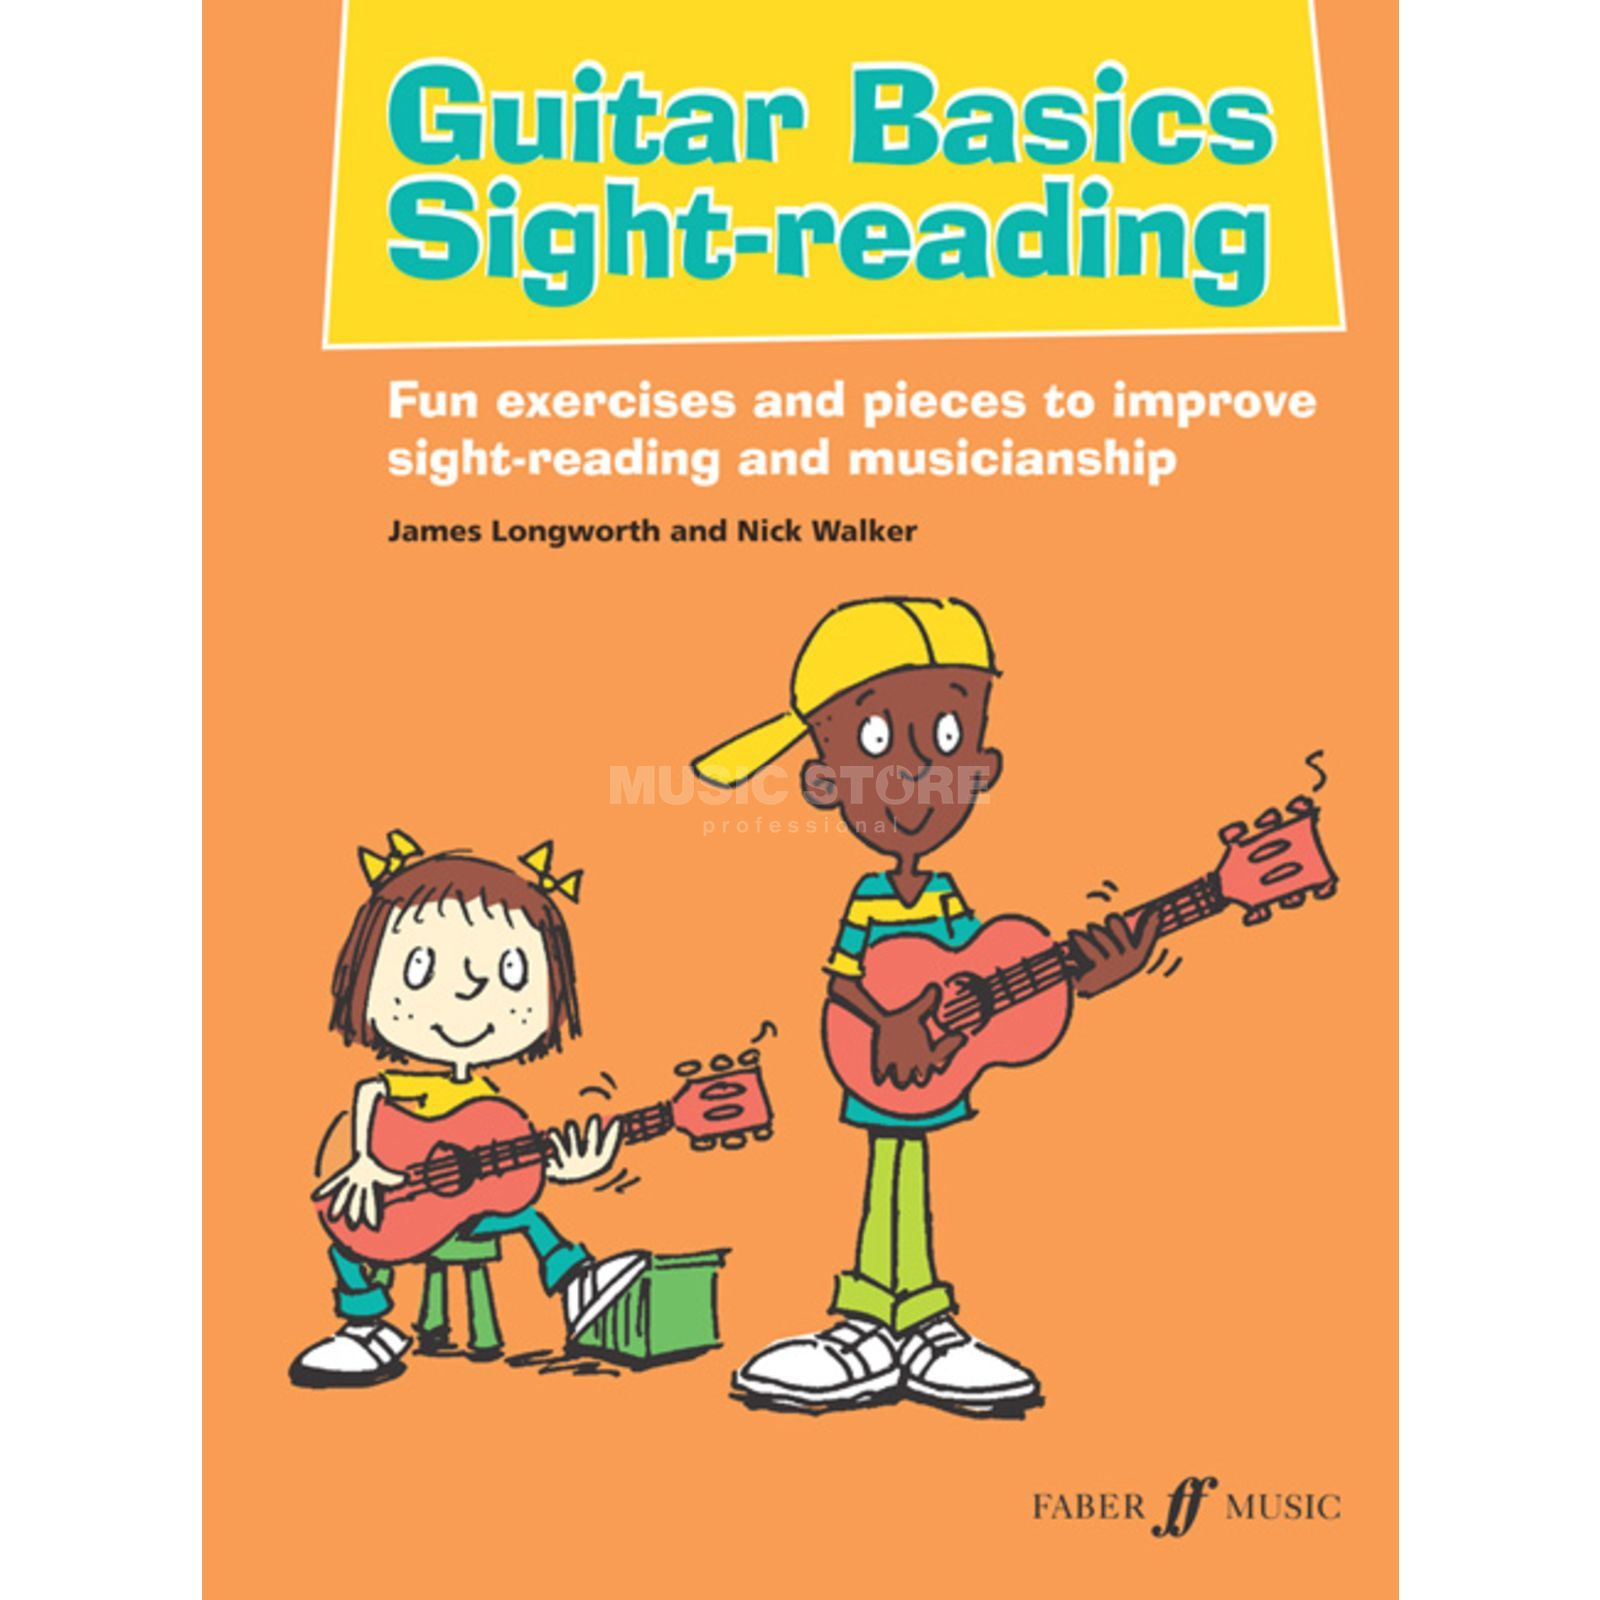 Faber Music Guitar Basics Sight-Reading Walker, Longworth Produktbild